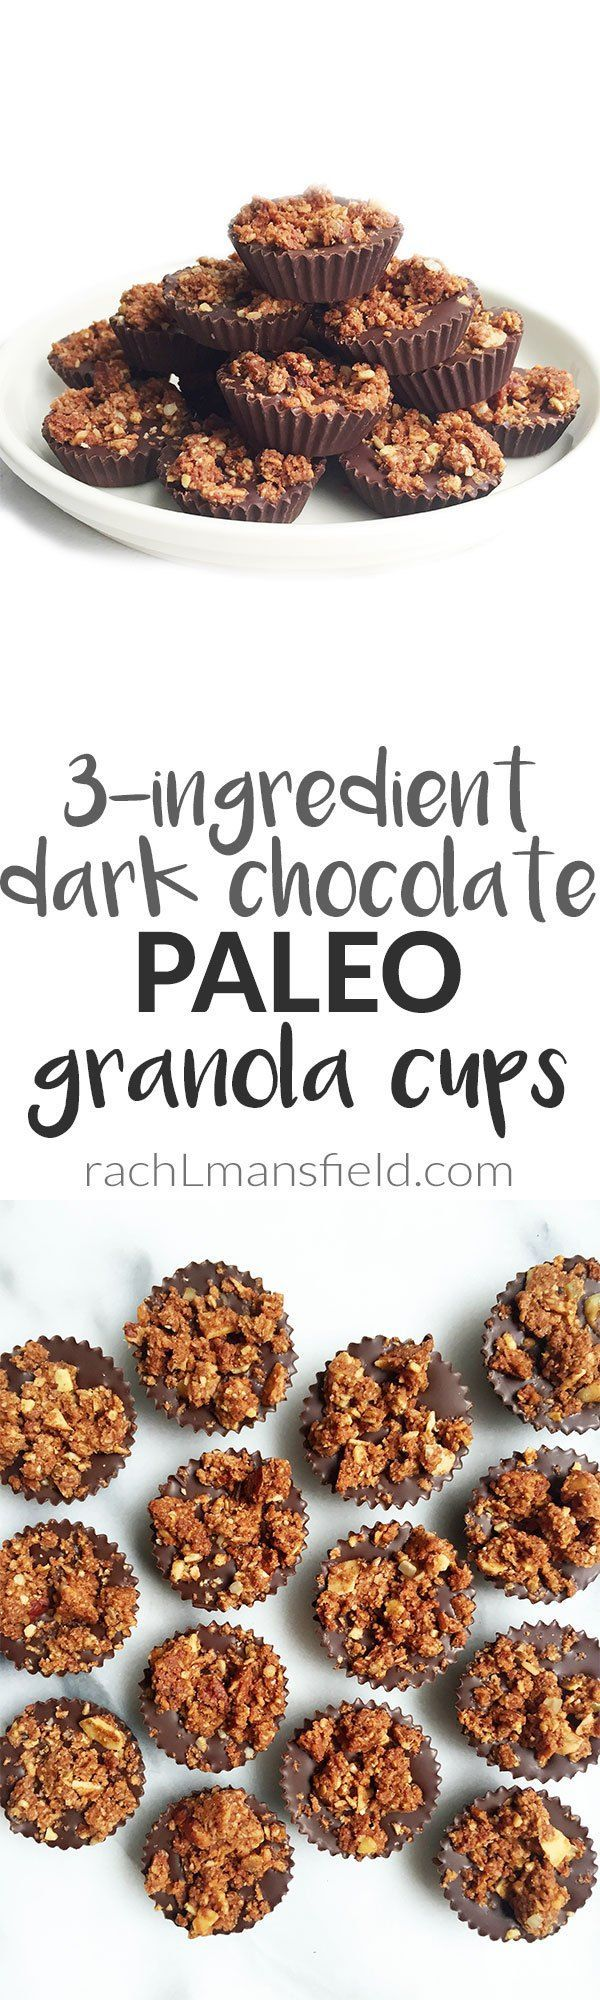 3-ingredient Dark Chocolate Paleo Granola Cups ready in just 30 minutes Easy dessert recipes are basically all I need in life (just kidding.. but like actually). Seriously though, there is nothing I look forward to more than having dessert. It's hands down one of my favorite parts of the day. I have (hopefully) accomplished all that...Read More »